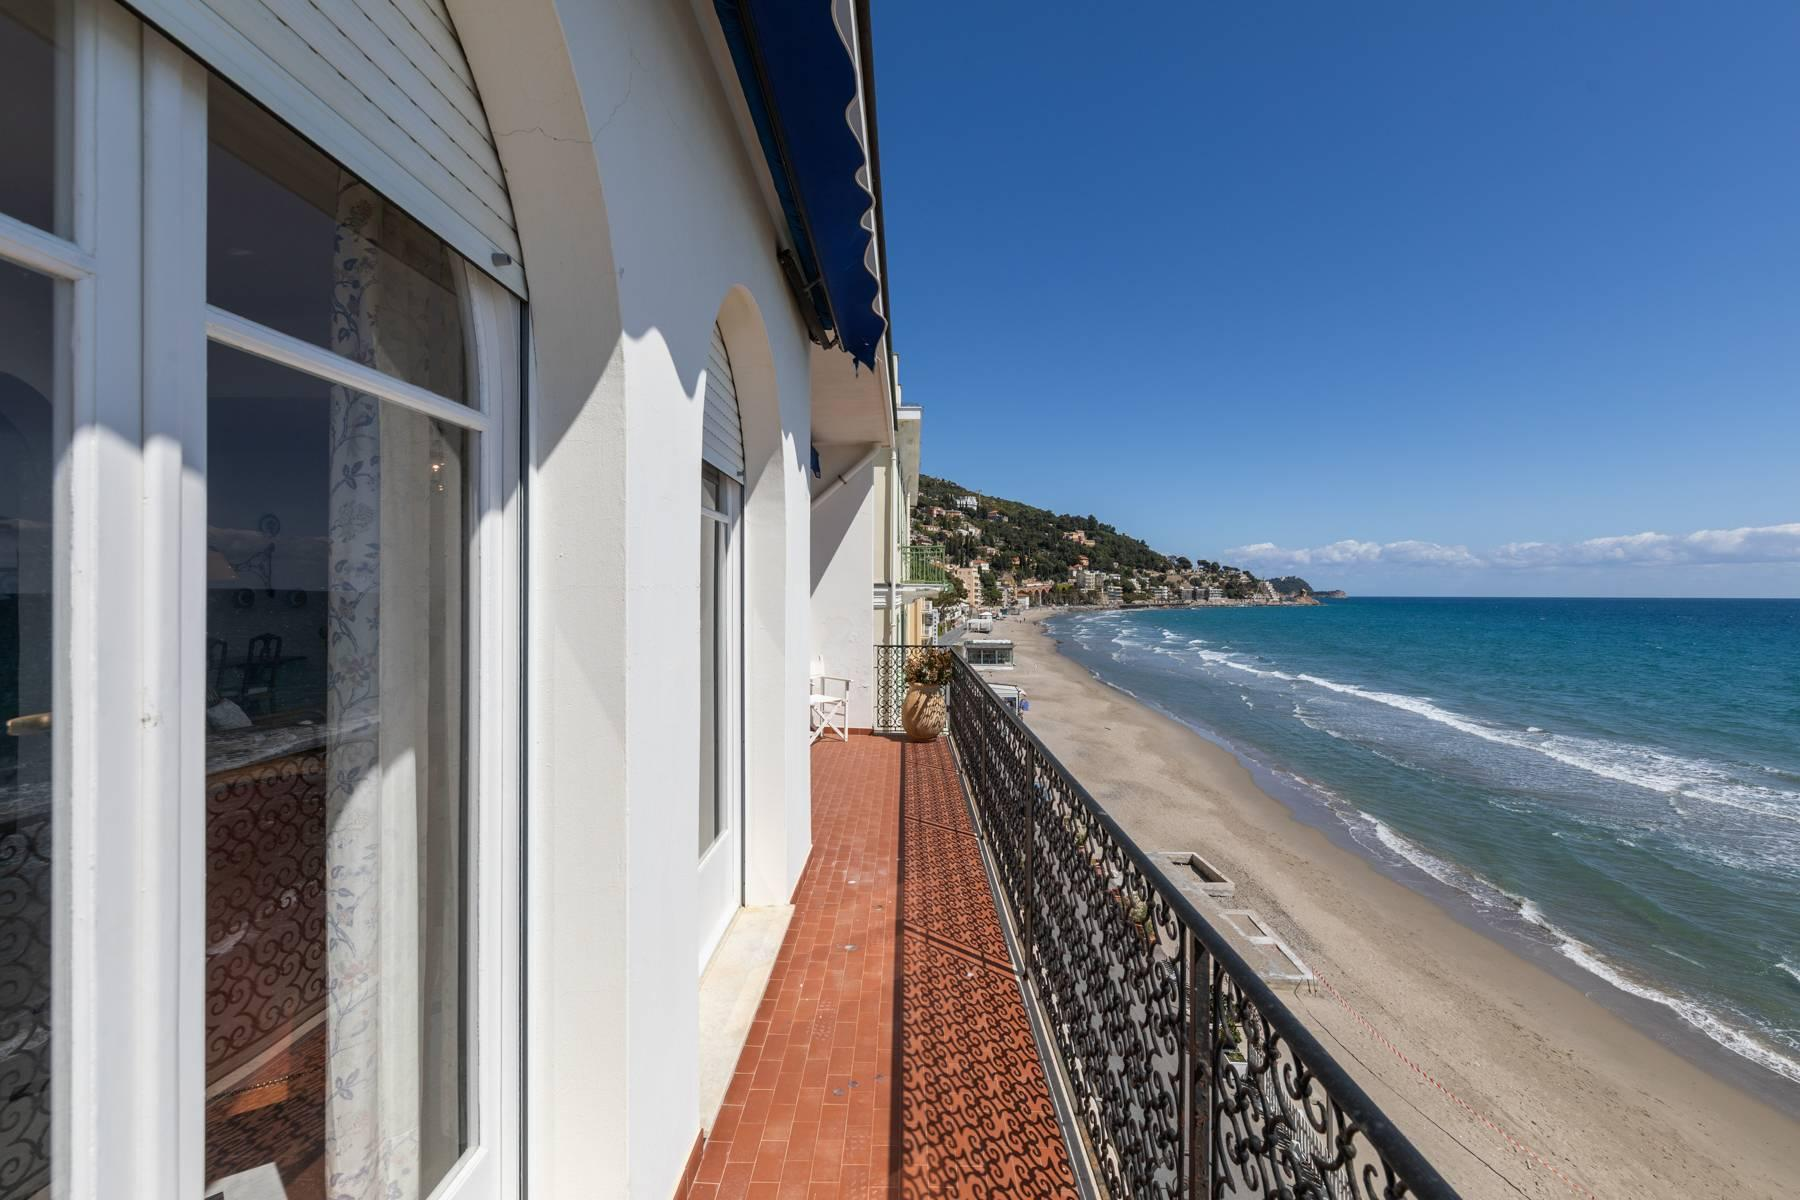 Panorama-Wohnung am Meer in Alassio - 18